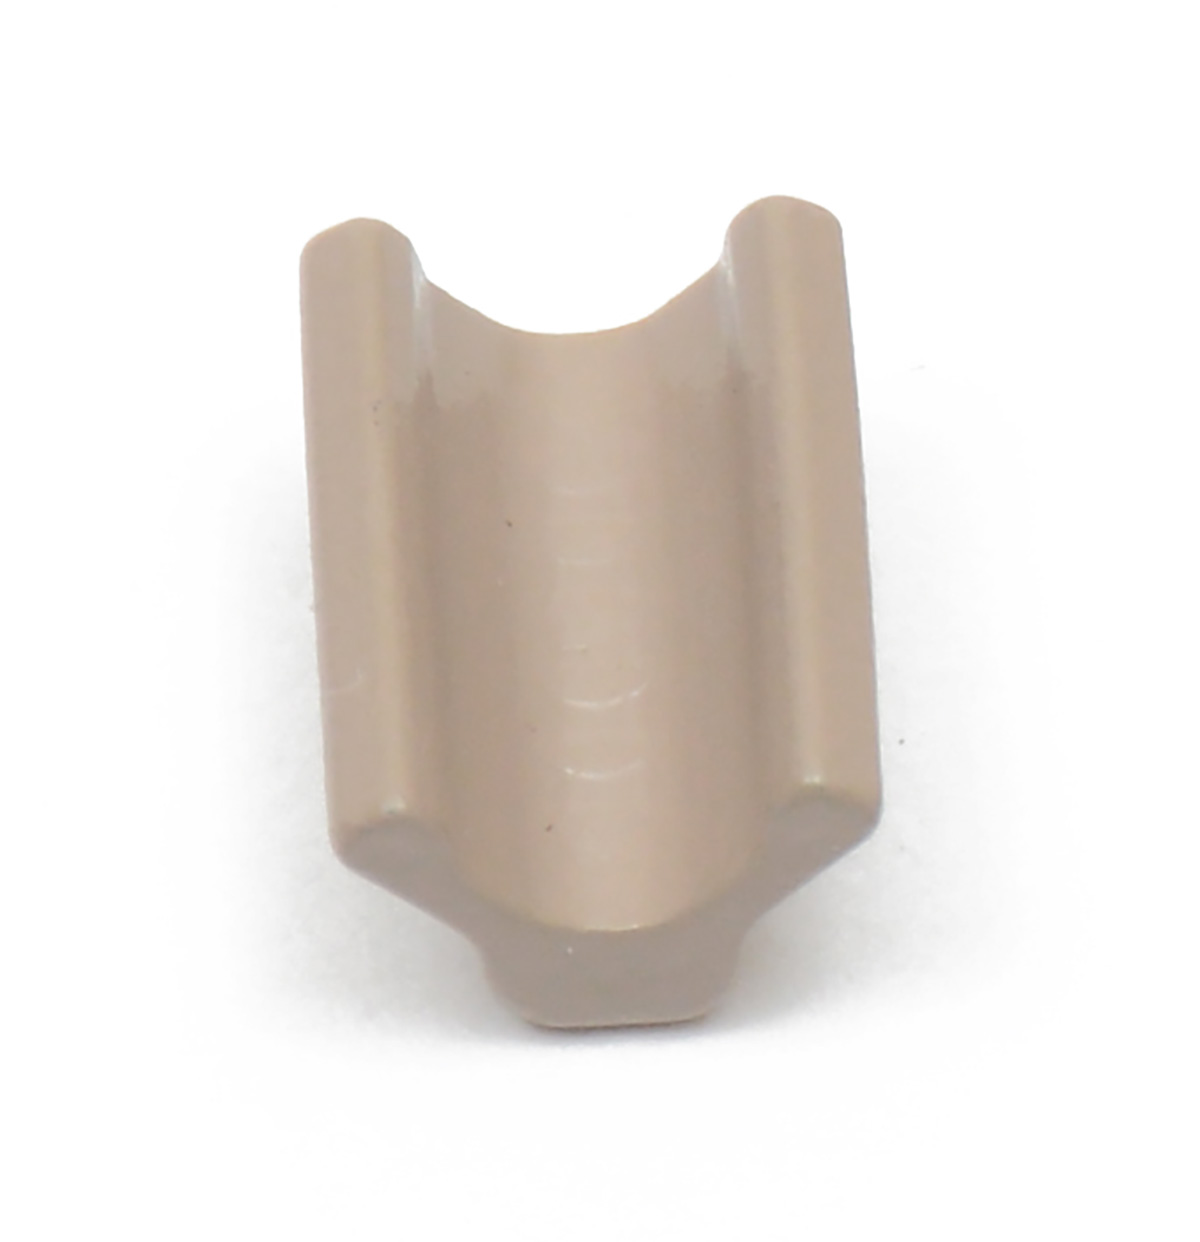 #10 YKK Vislon Top Stops - Beige top stops to be used with #10 beige Vislon zipper chain. This product is sold as a 100 pack.